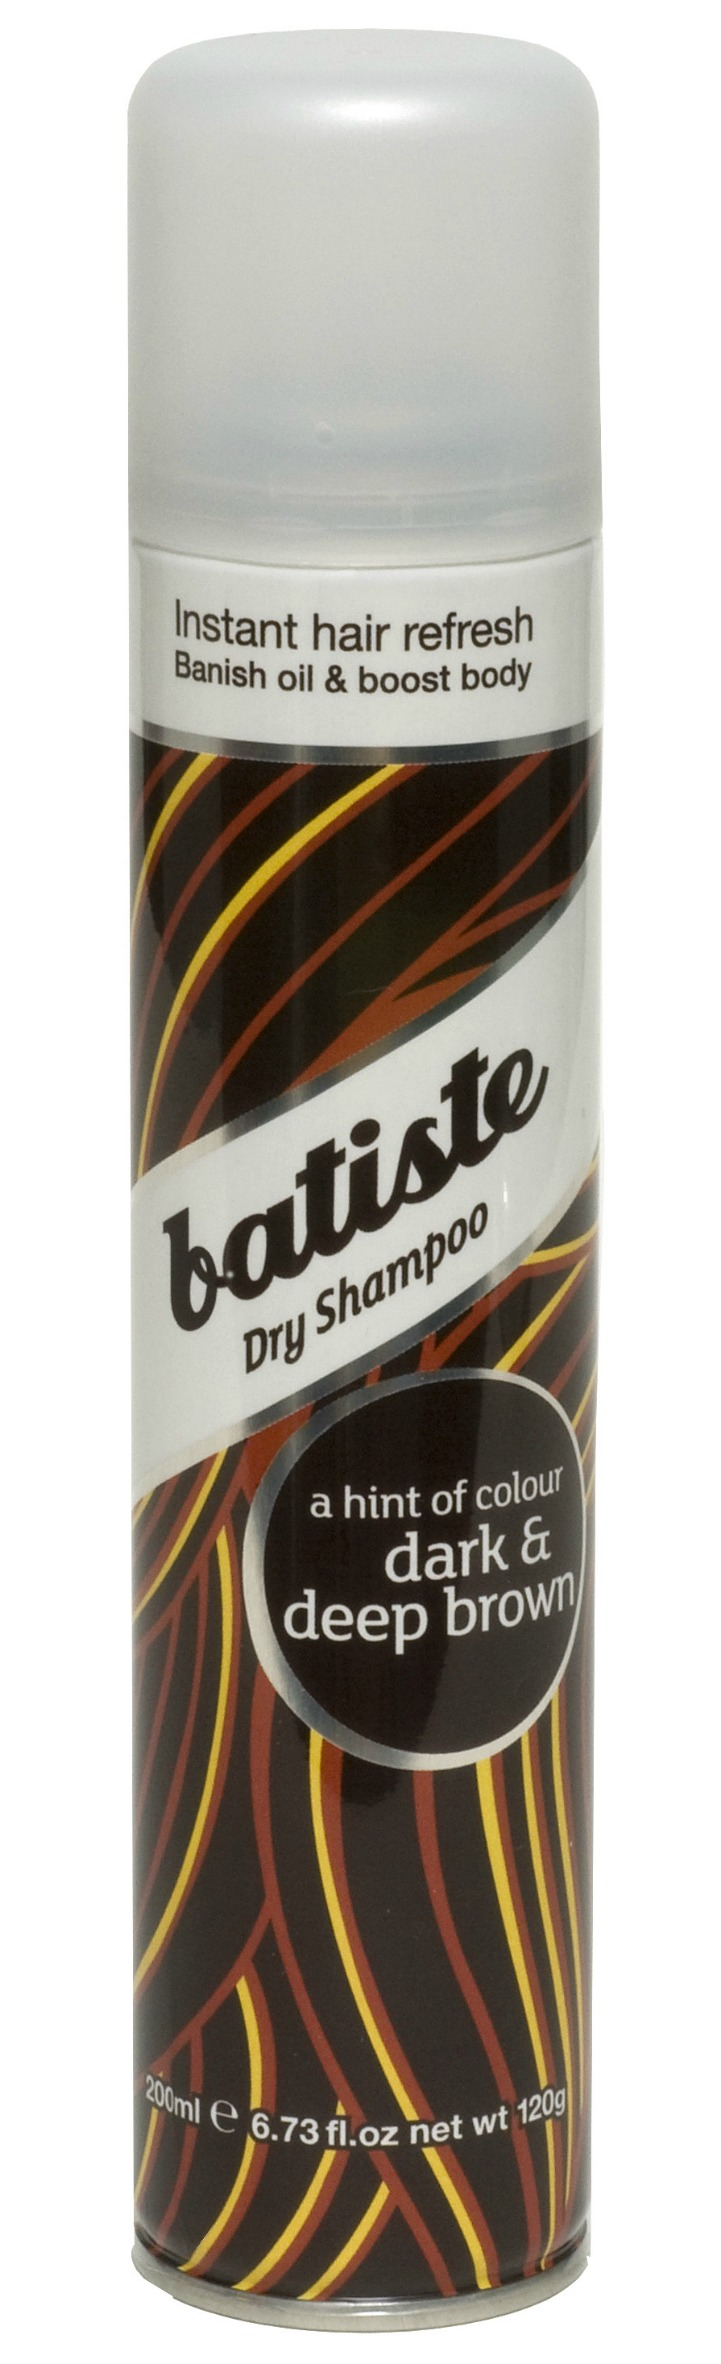 batiste-dry-shampoo-dark-and-deep-brown-200ml_picnik.jpg